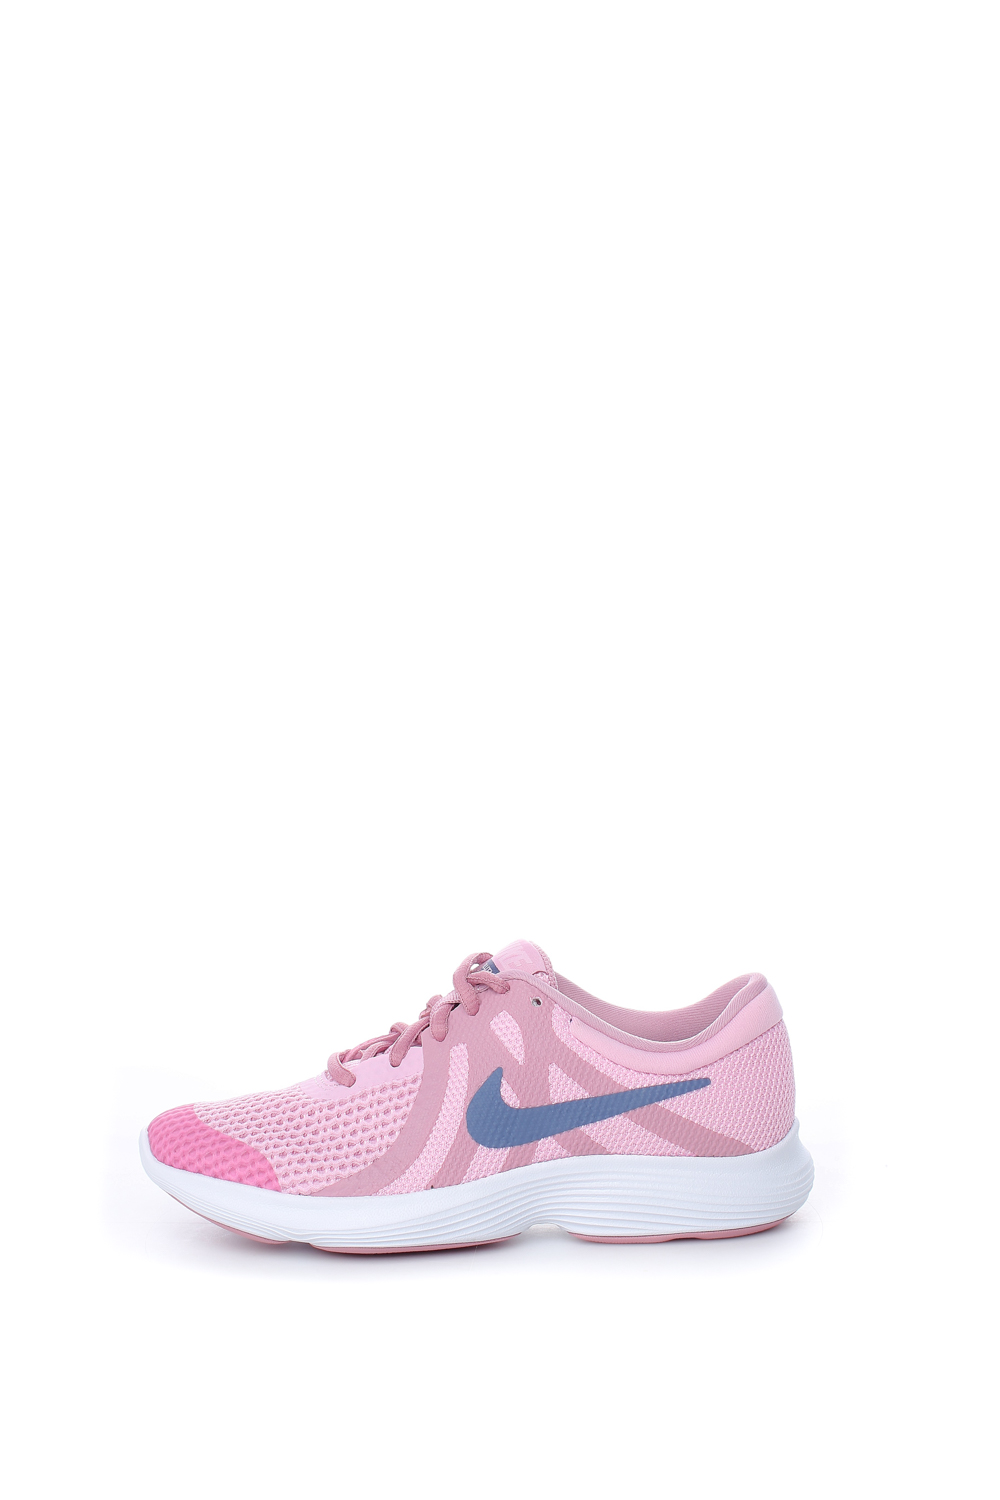 97a72d37c45 -30% Factory Outlet NIKE – Παιδικά παπούτσια NIKE REVOLUTION 4 (GS) ροζ